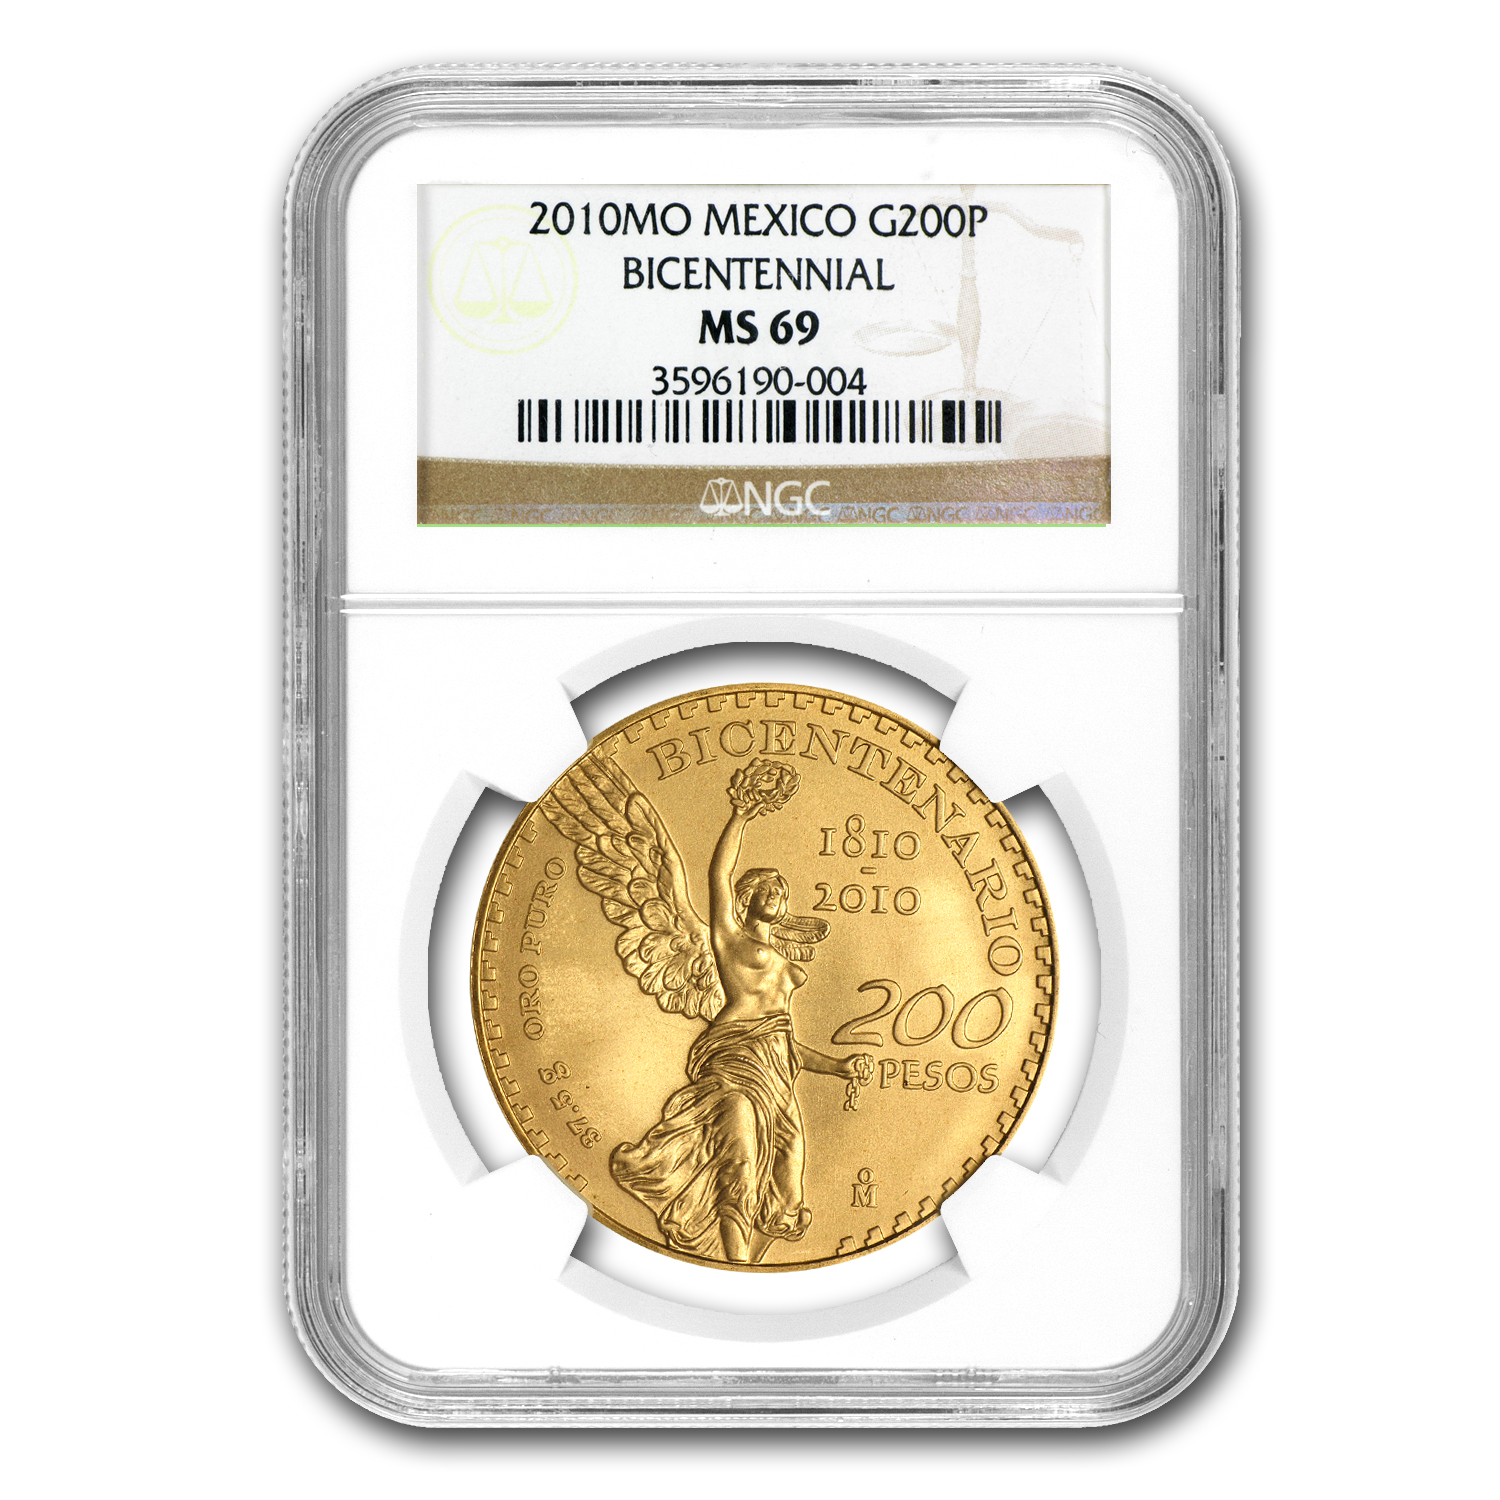 2010 Mexico Gold 200 Pesos Bicentenary Commemorative MS-69 NGC